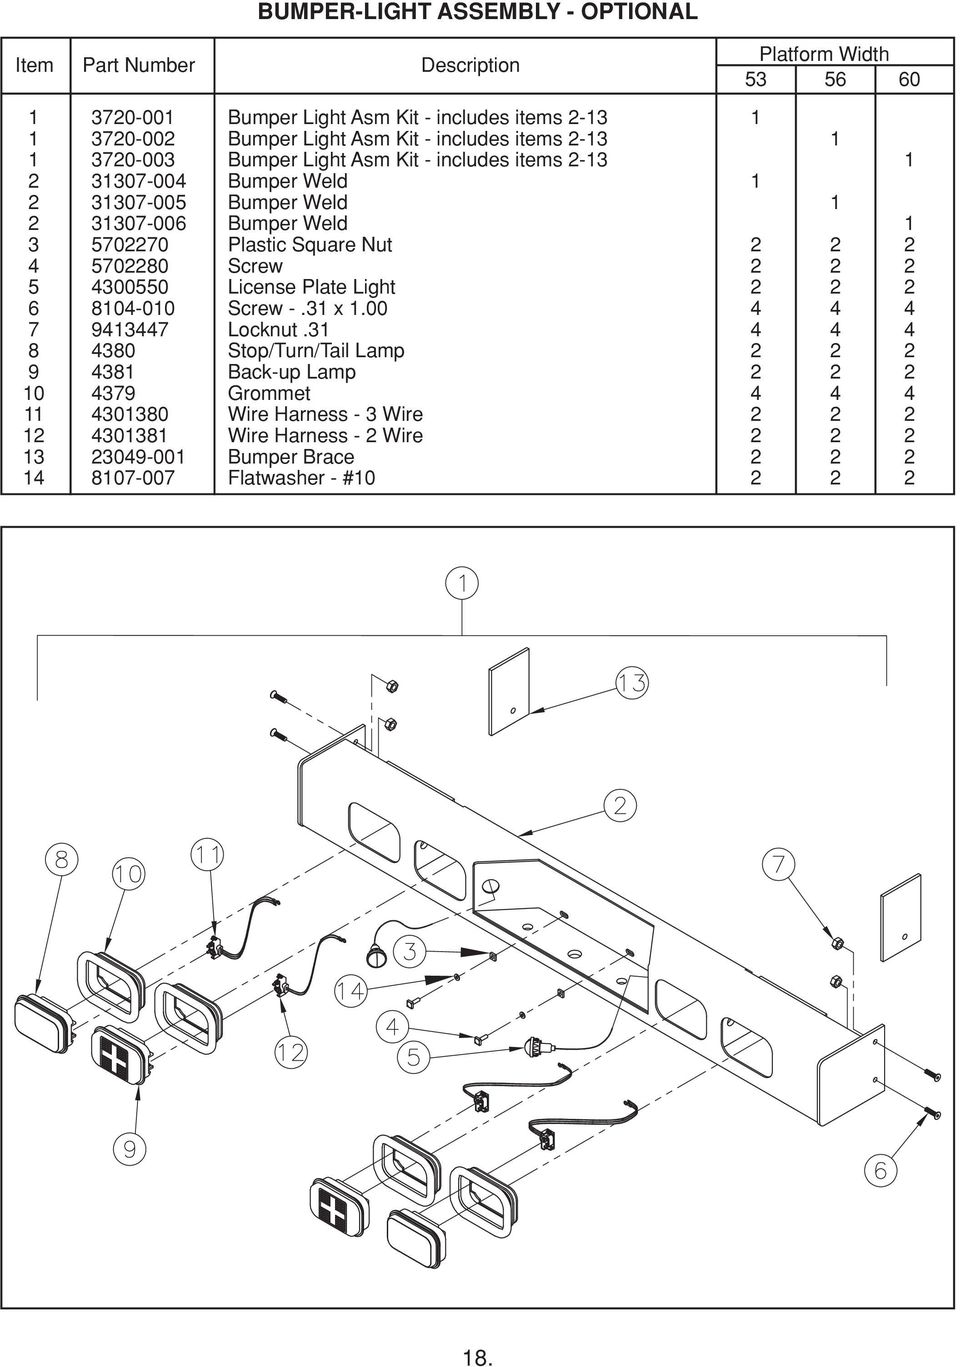 1998 jeep grand cherokee lift gate wiring diagram tailgates by thieman tt-15 owners manual/parts list shown ... #5